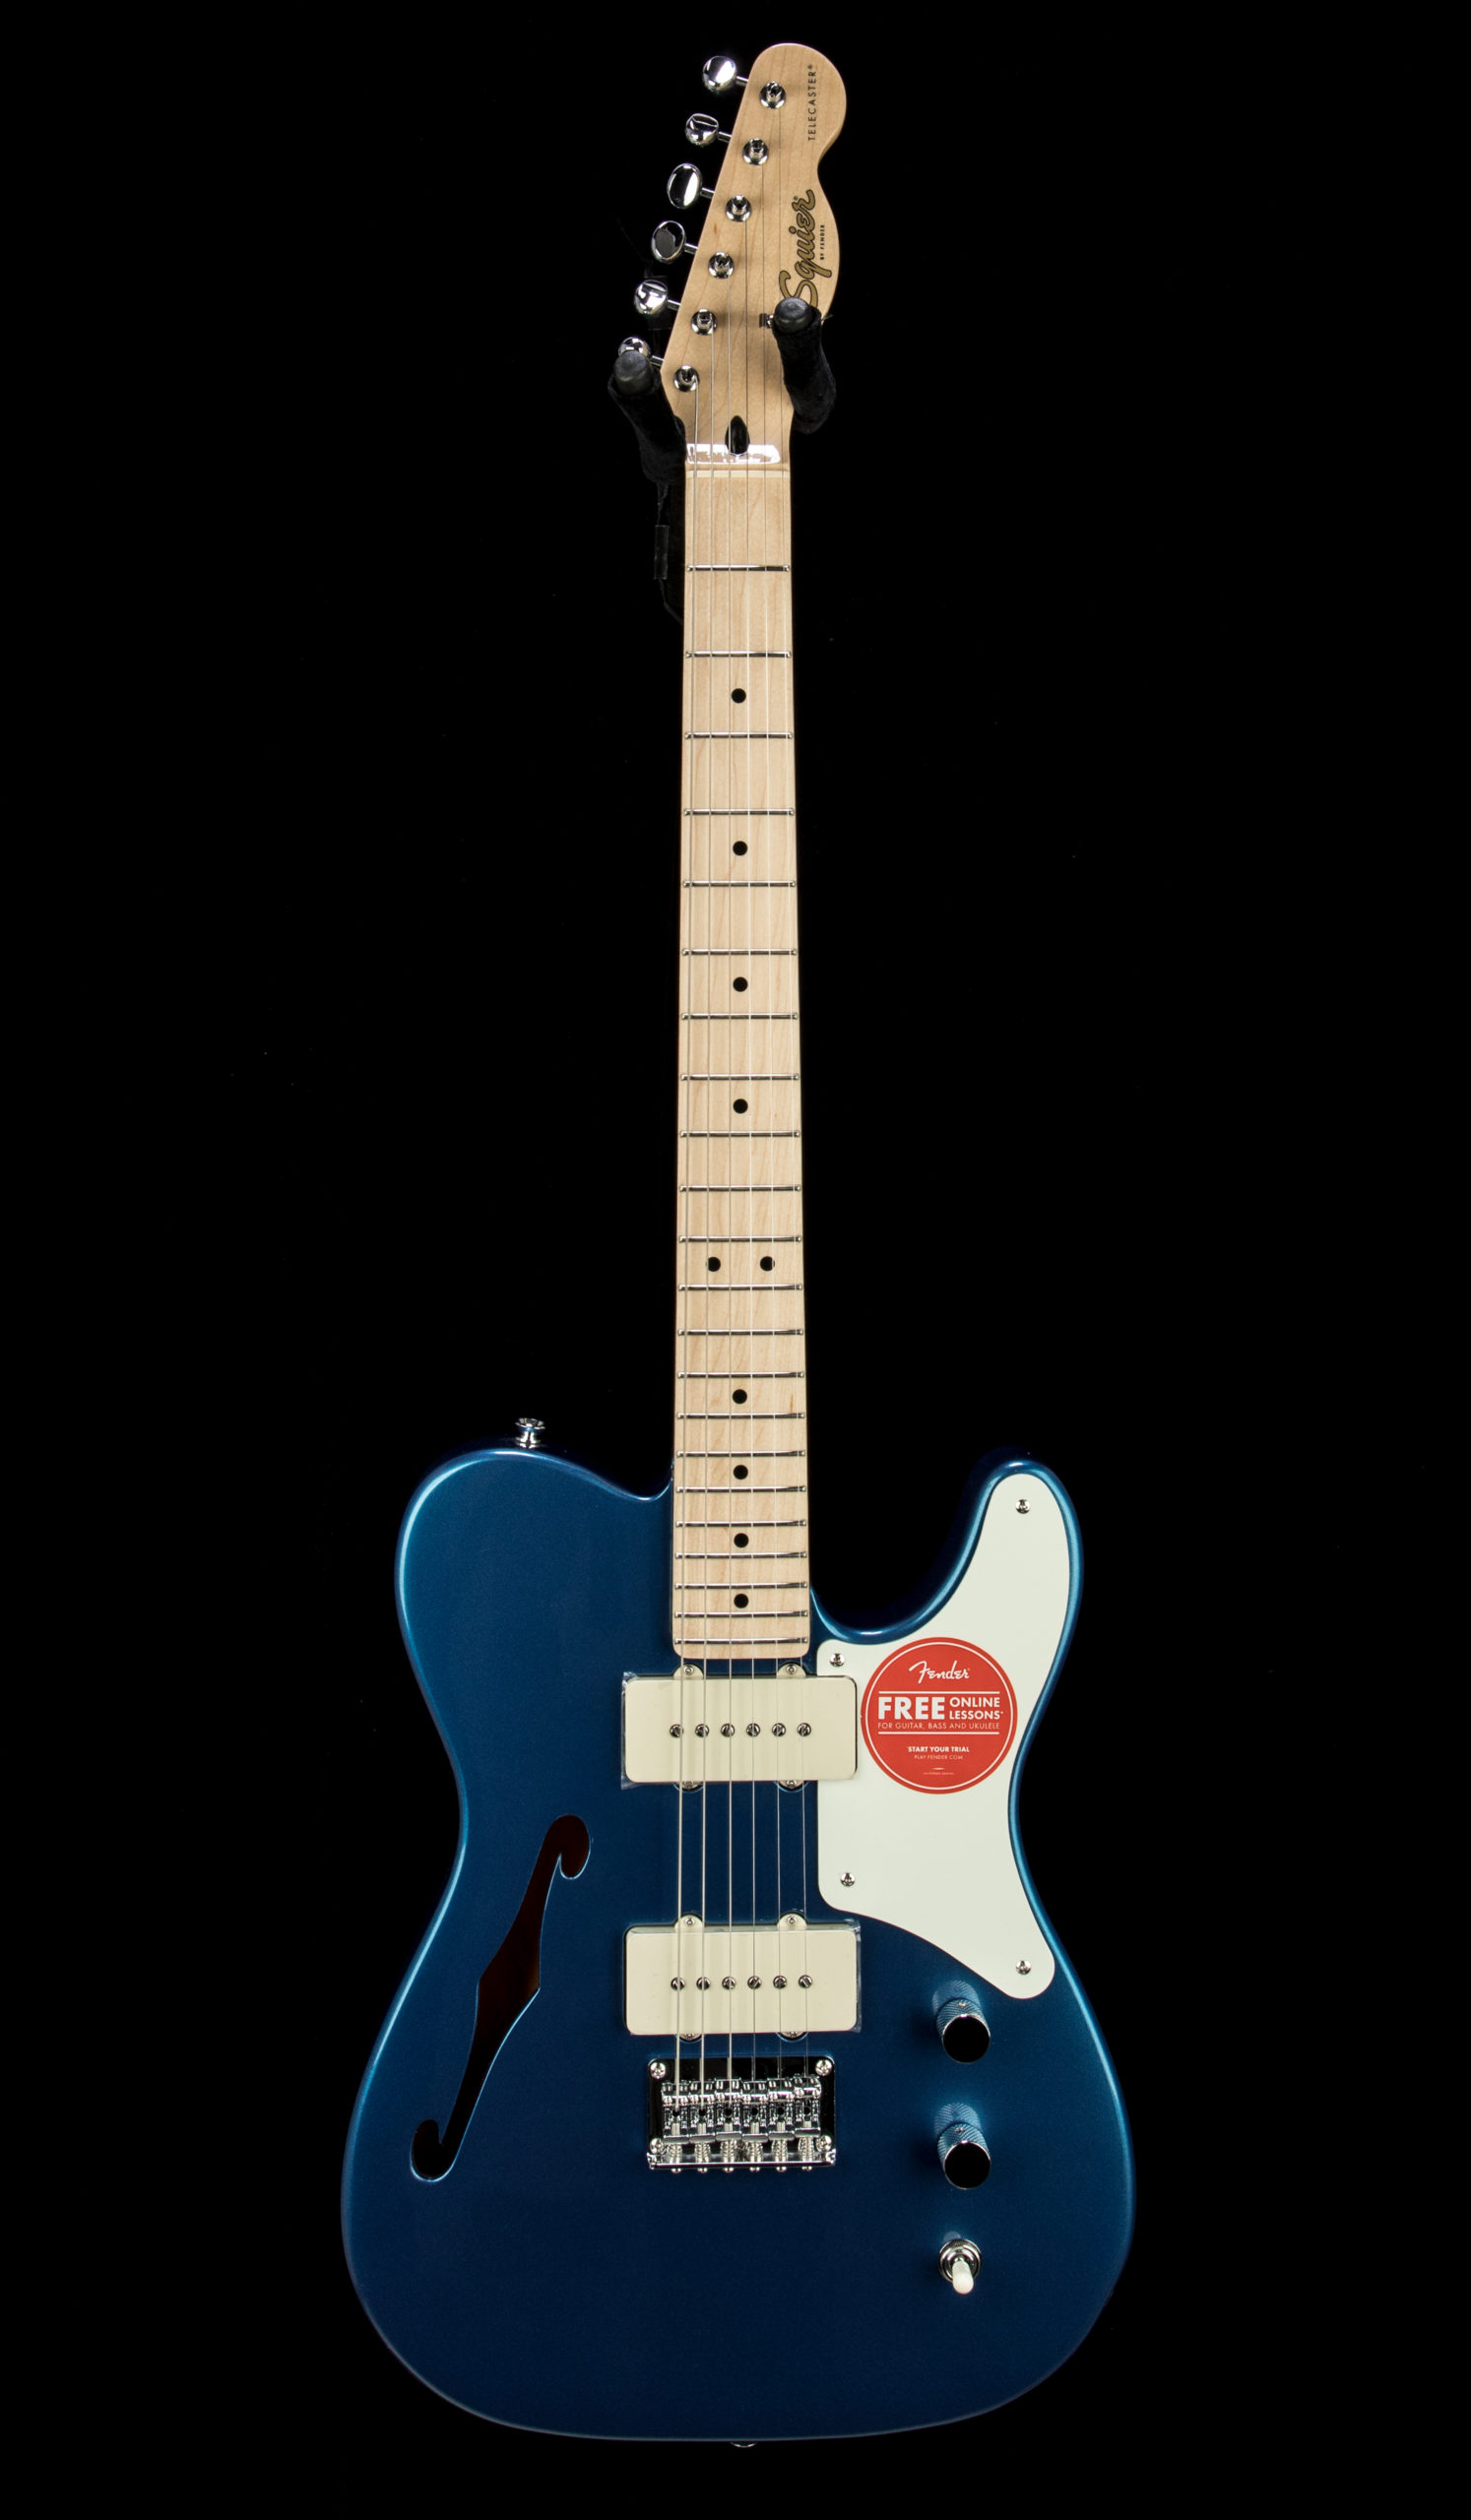 Squier Paranormal Cab Tele Thinline #CYKC21002473 Front